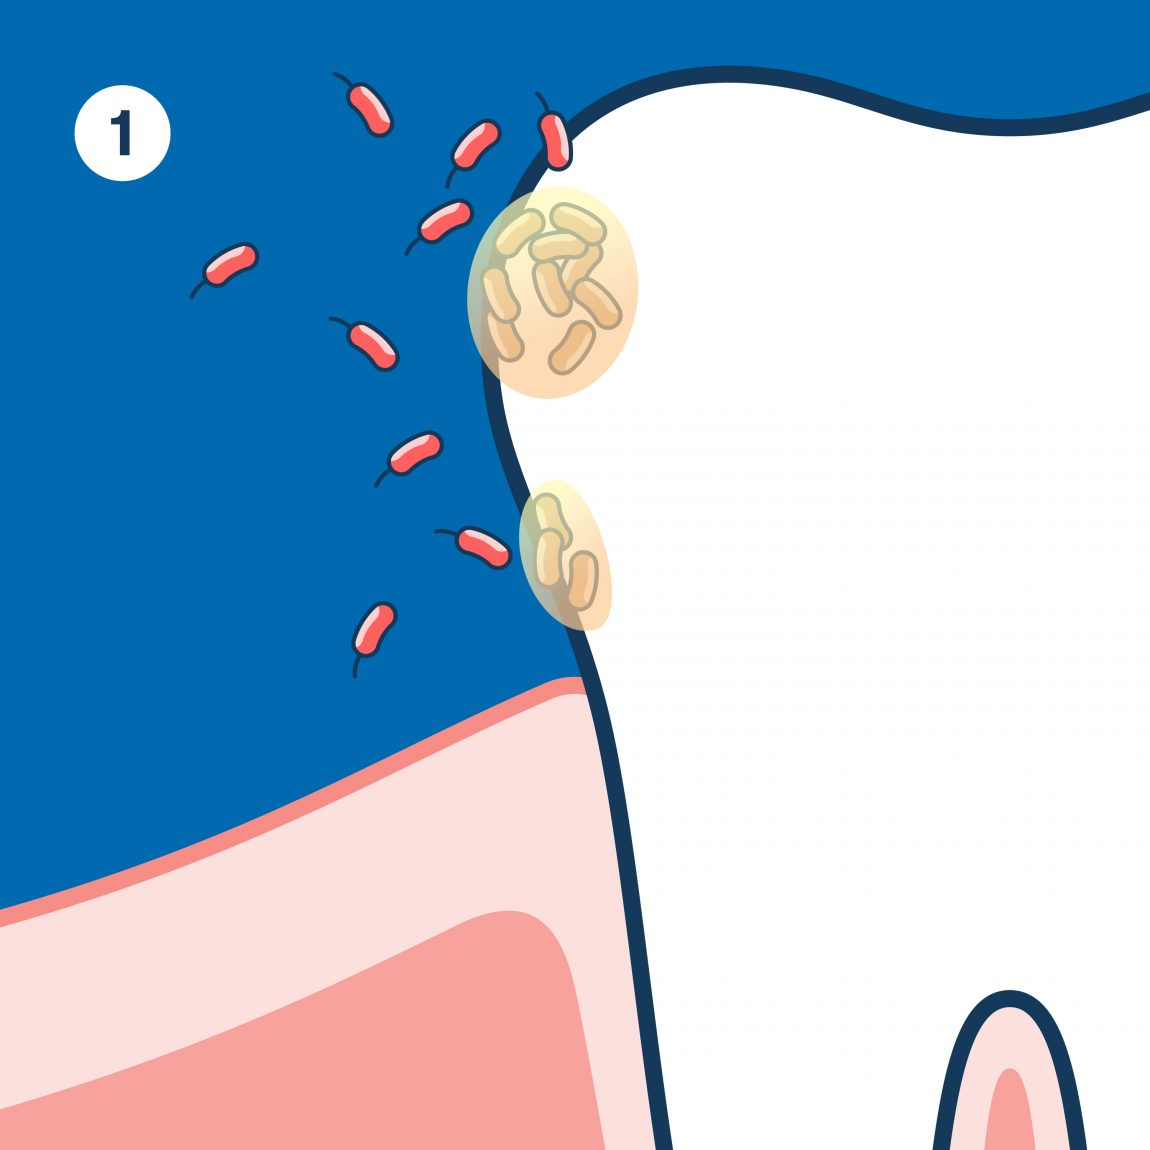 First stage of dental plaque. Bacteria in your mouth attach to tooth.